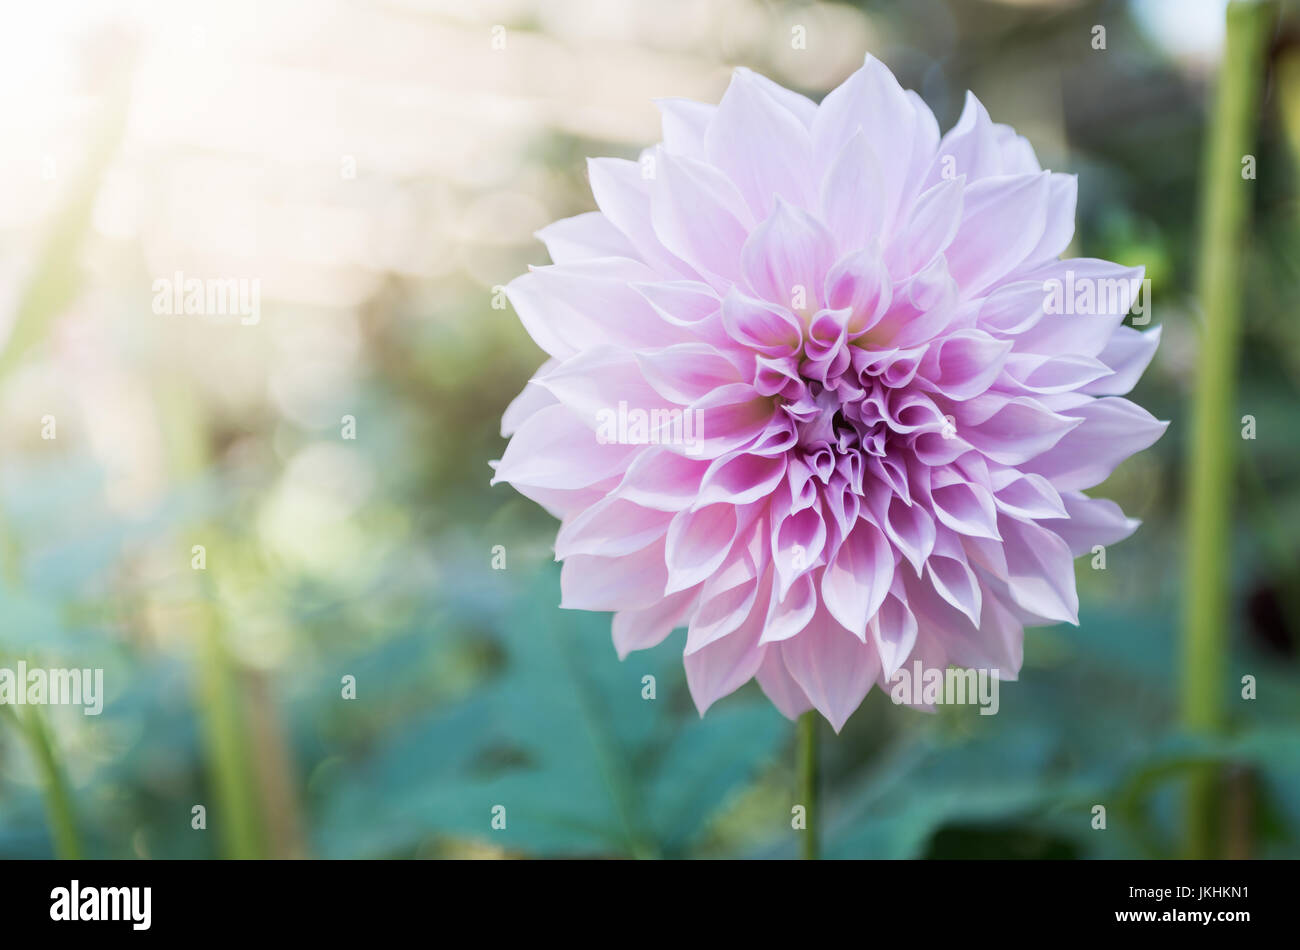 Dahlia Light Stock Photos Dahlia Light Stock Images Alamy